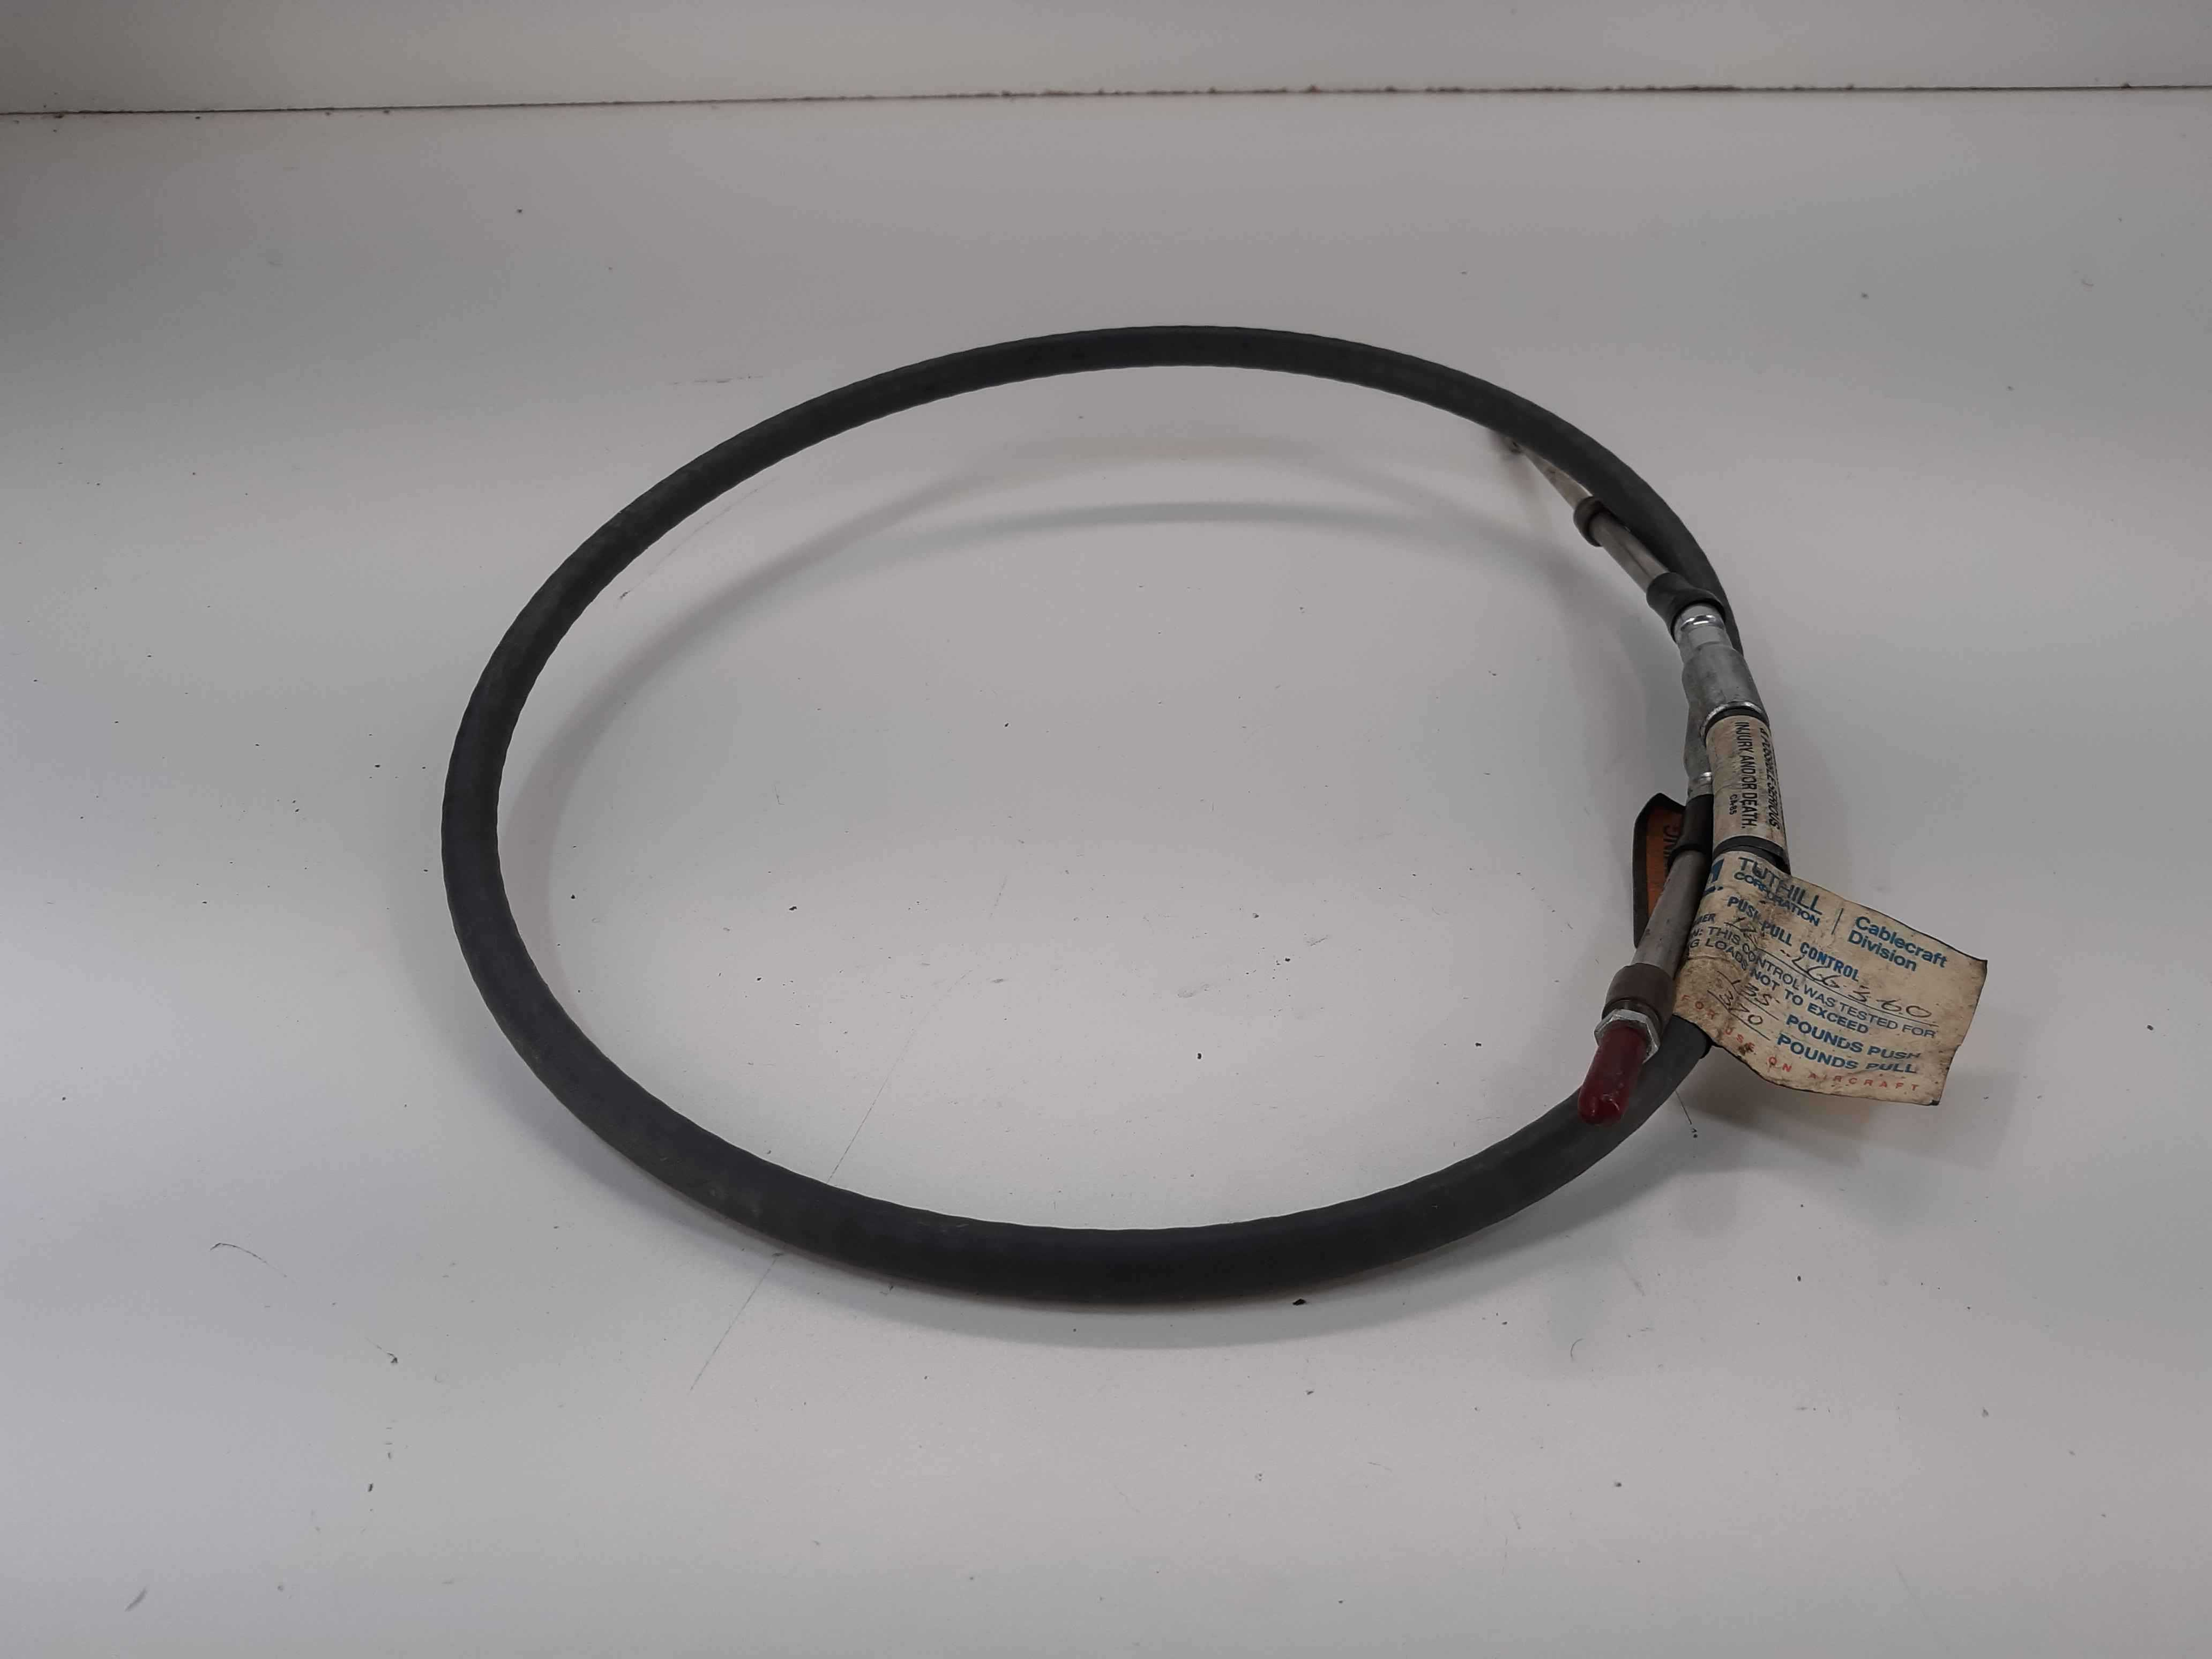 Cablecraft 173-L66360 Push/Pull Control Cable